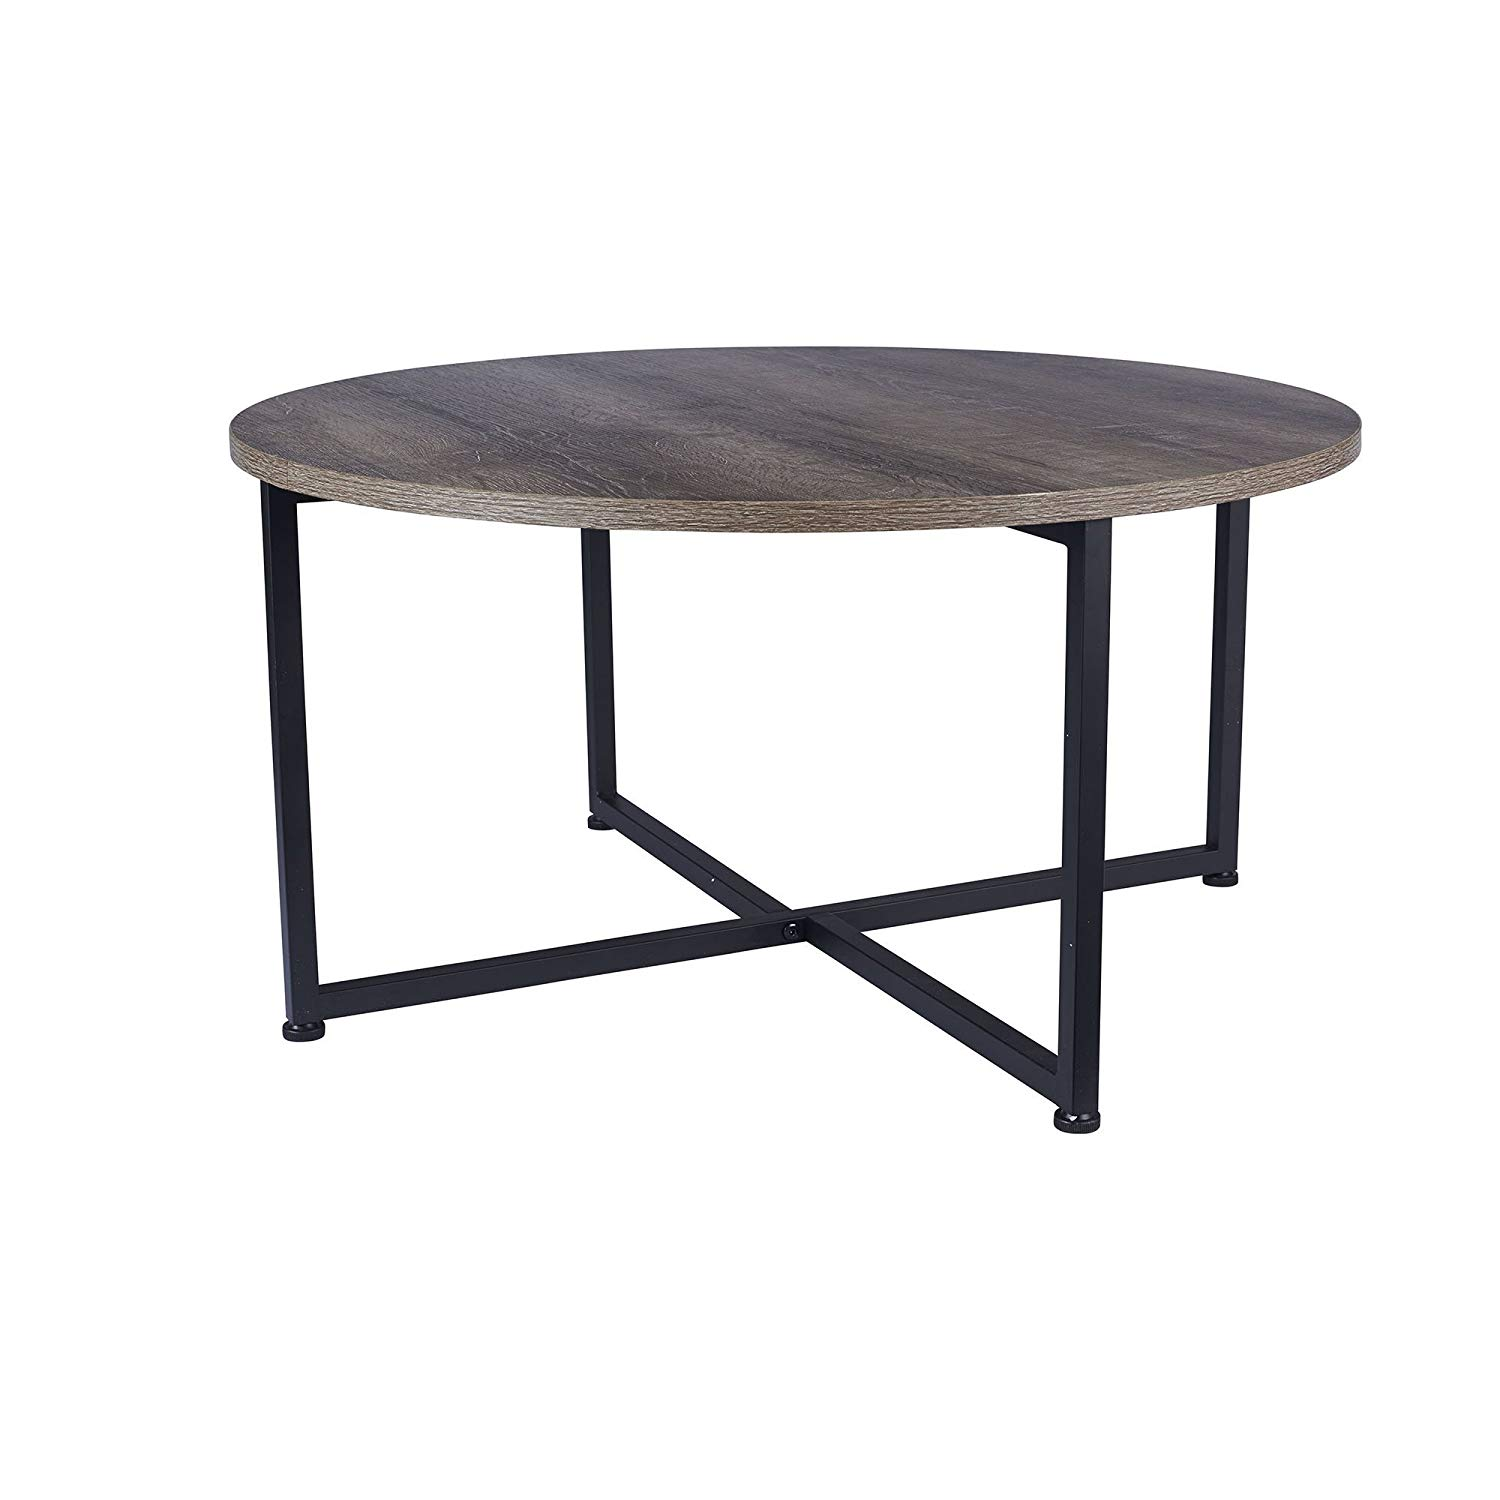 household essentials ashwood round coffee table better homes and gardens accent rustic gray distressed brown black metal frame kitchen dining pedestal bedside lucite stacking